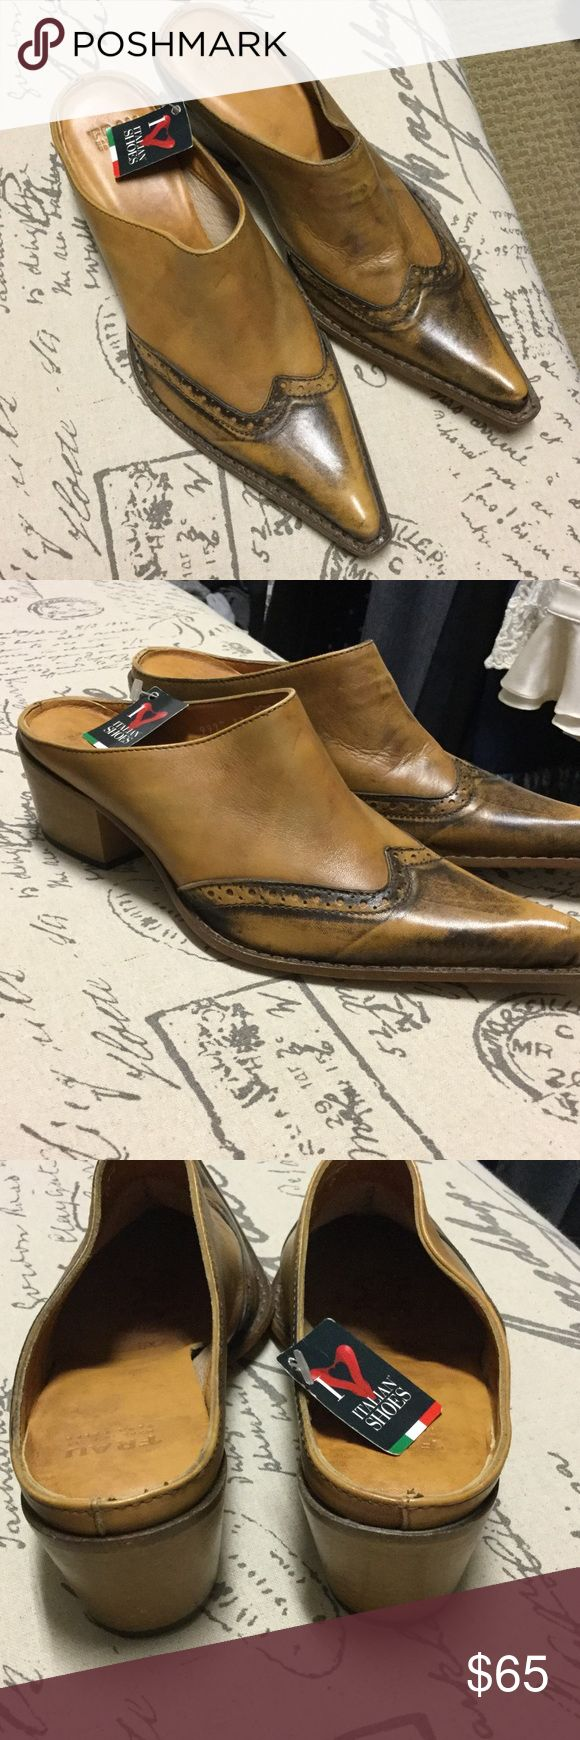 Frau mules Brand-new Frau mules! These have a long toe (giving it a boot look) these are made in Italy. Frau Shoes Mules & Clogs